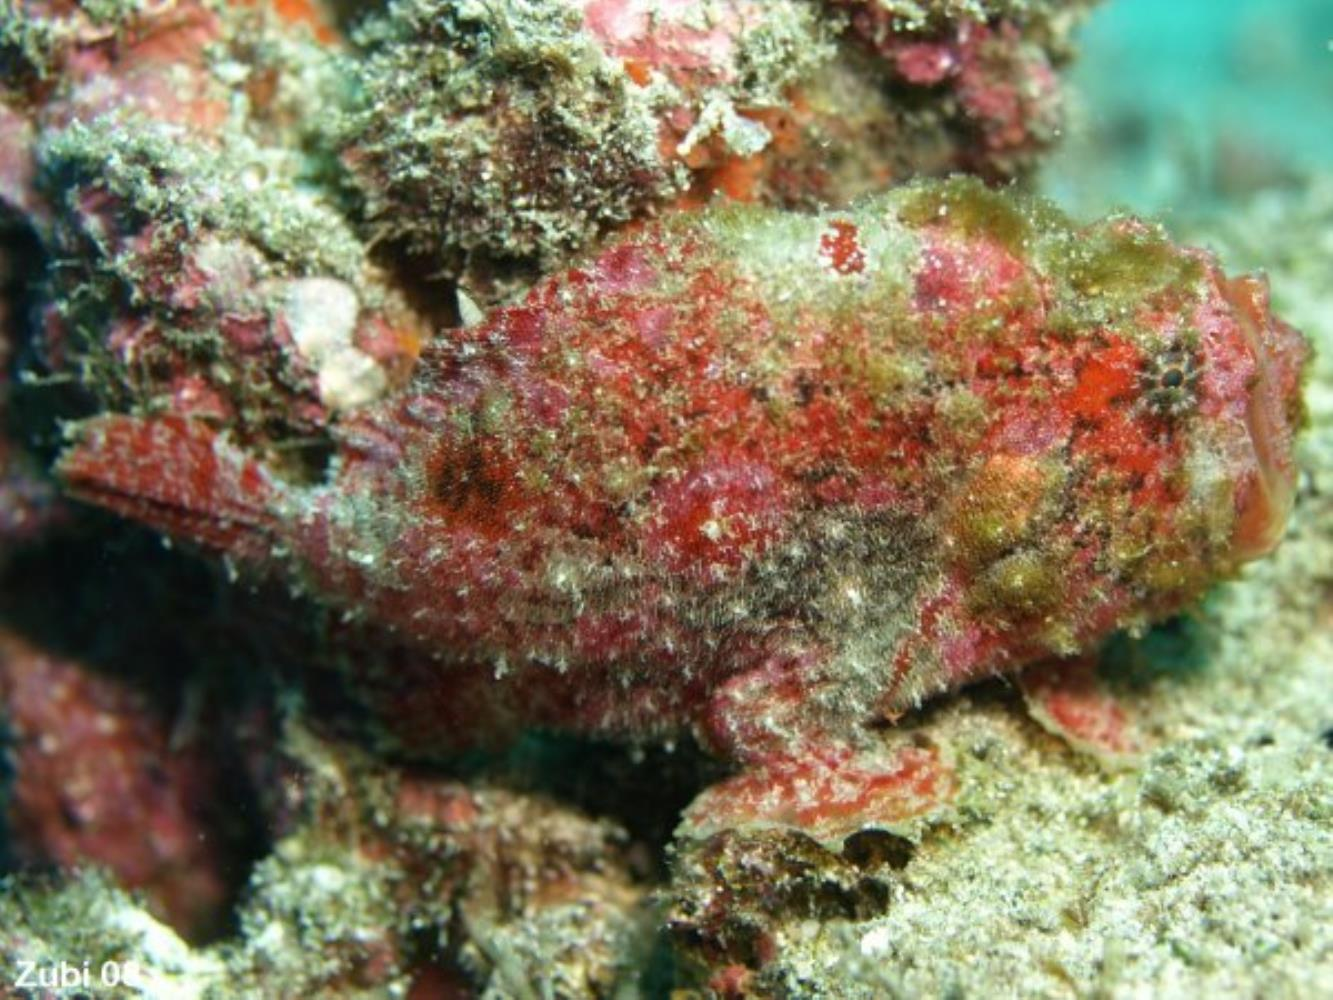 Scarlet Frogfish